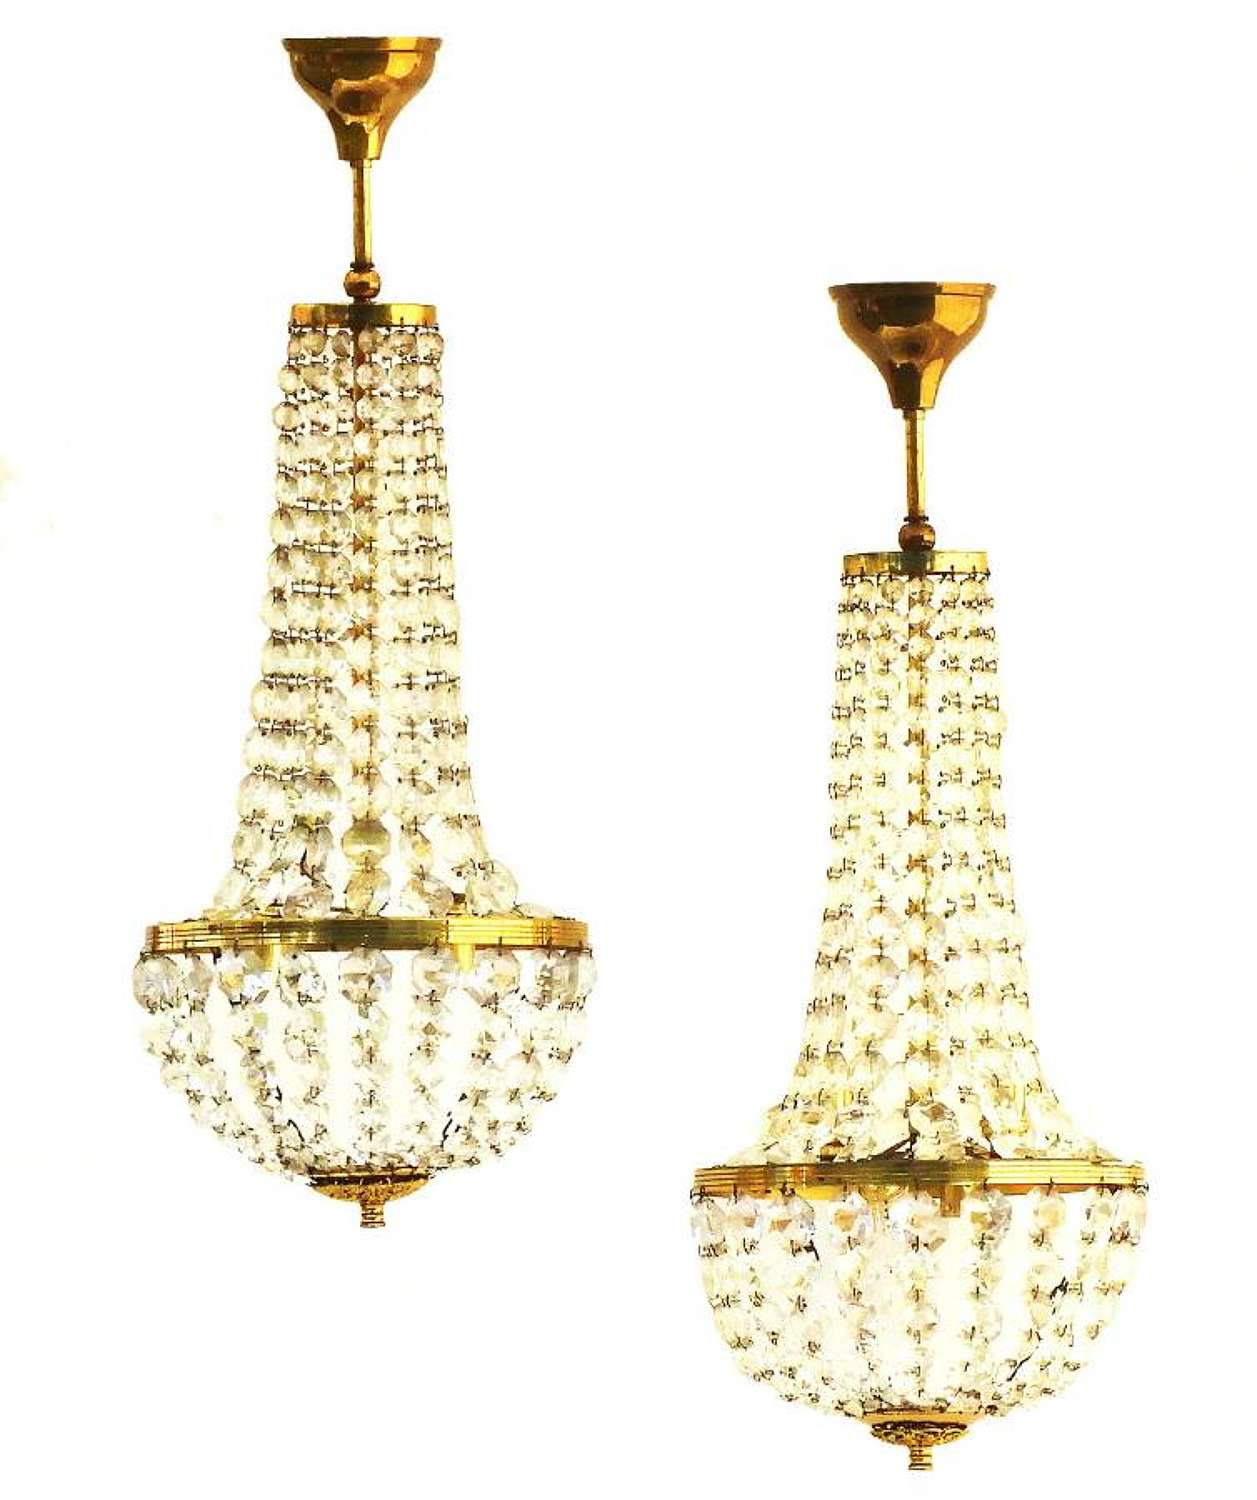 Pair of Belle Epoque Chandeliers French Mongolfiers Balloon Crystal, circa 1900